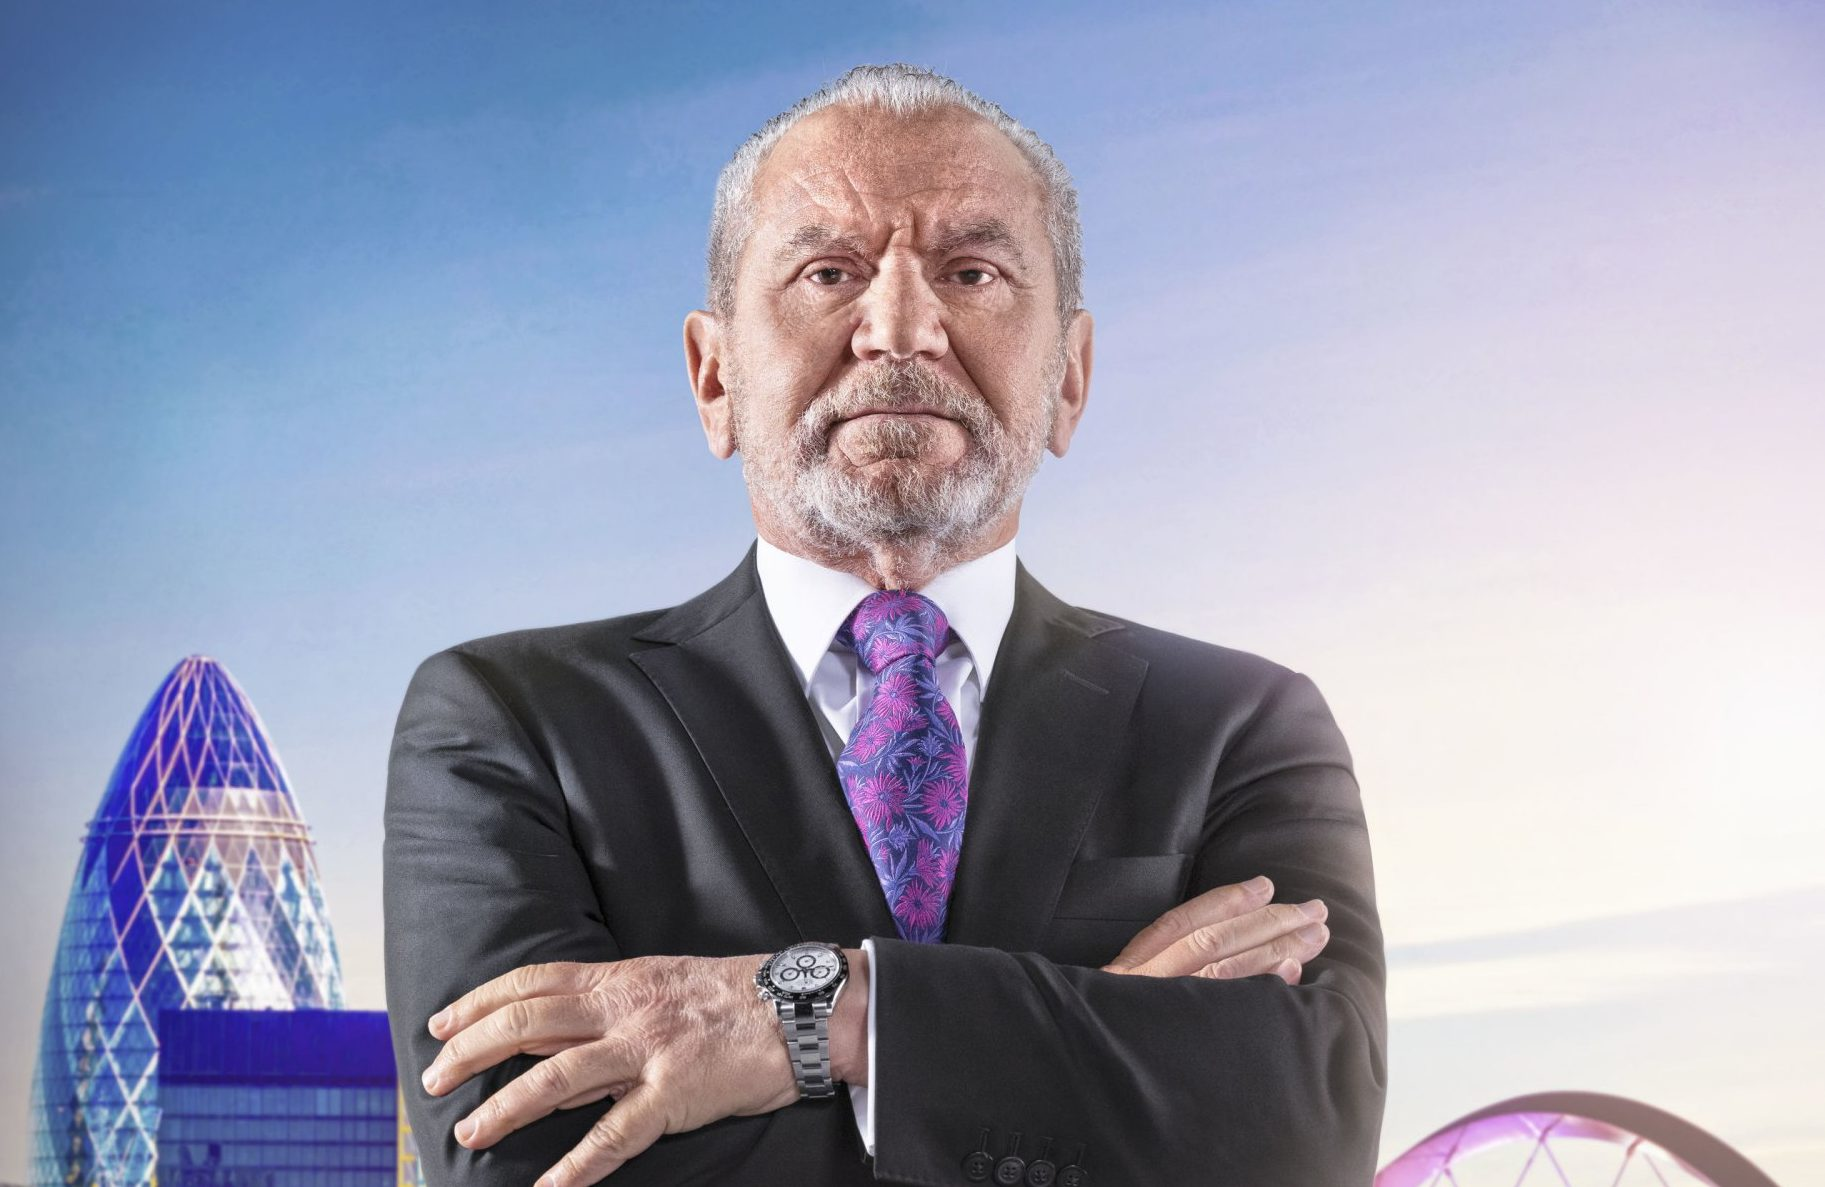 Tom Bunday and Jackie Fast leave The Apprentice in first double firing of the series